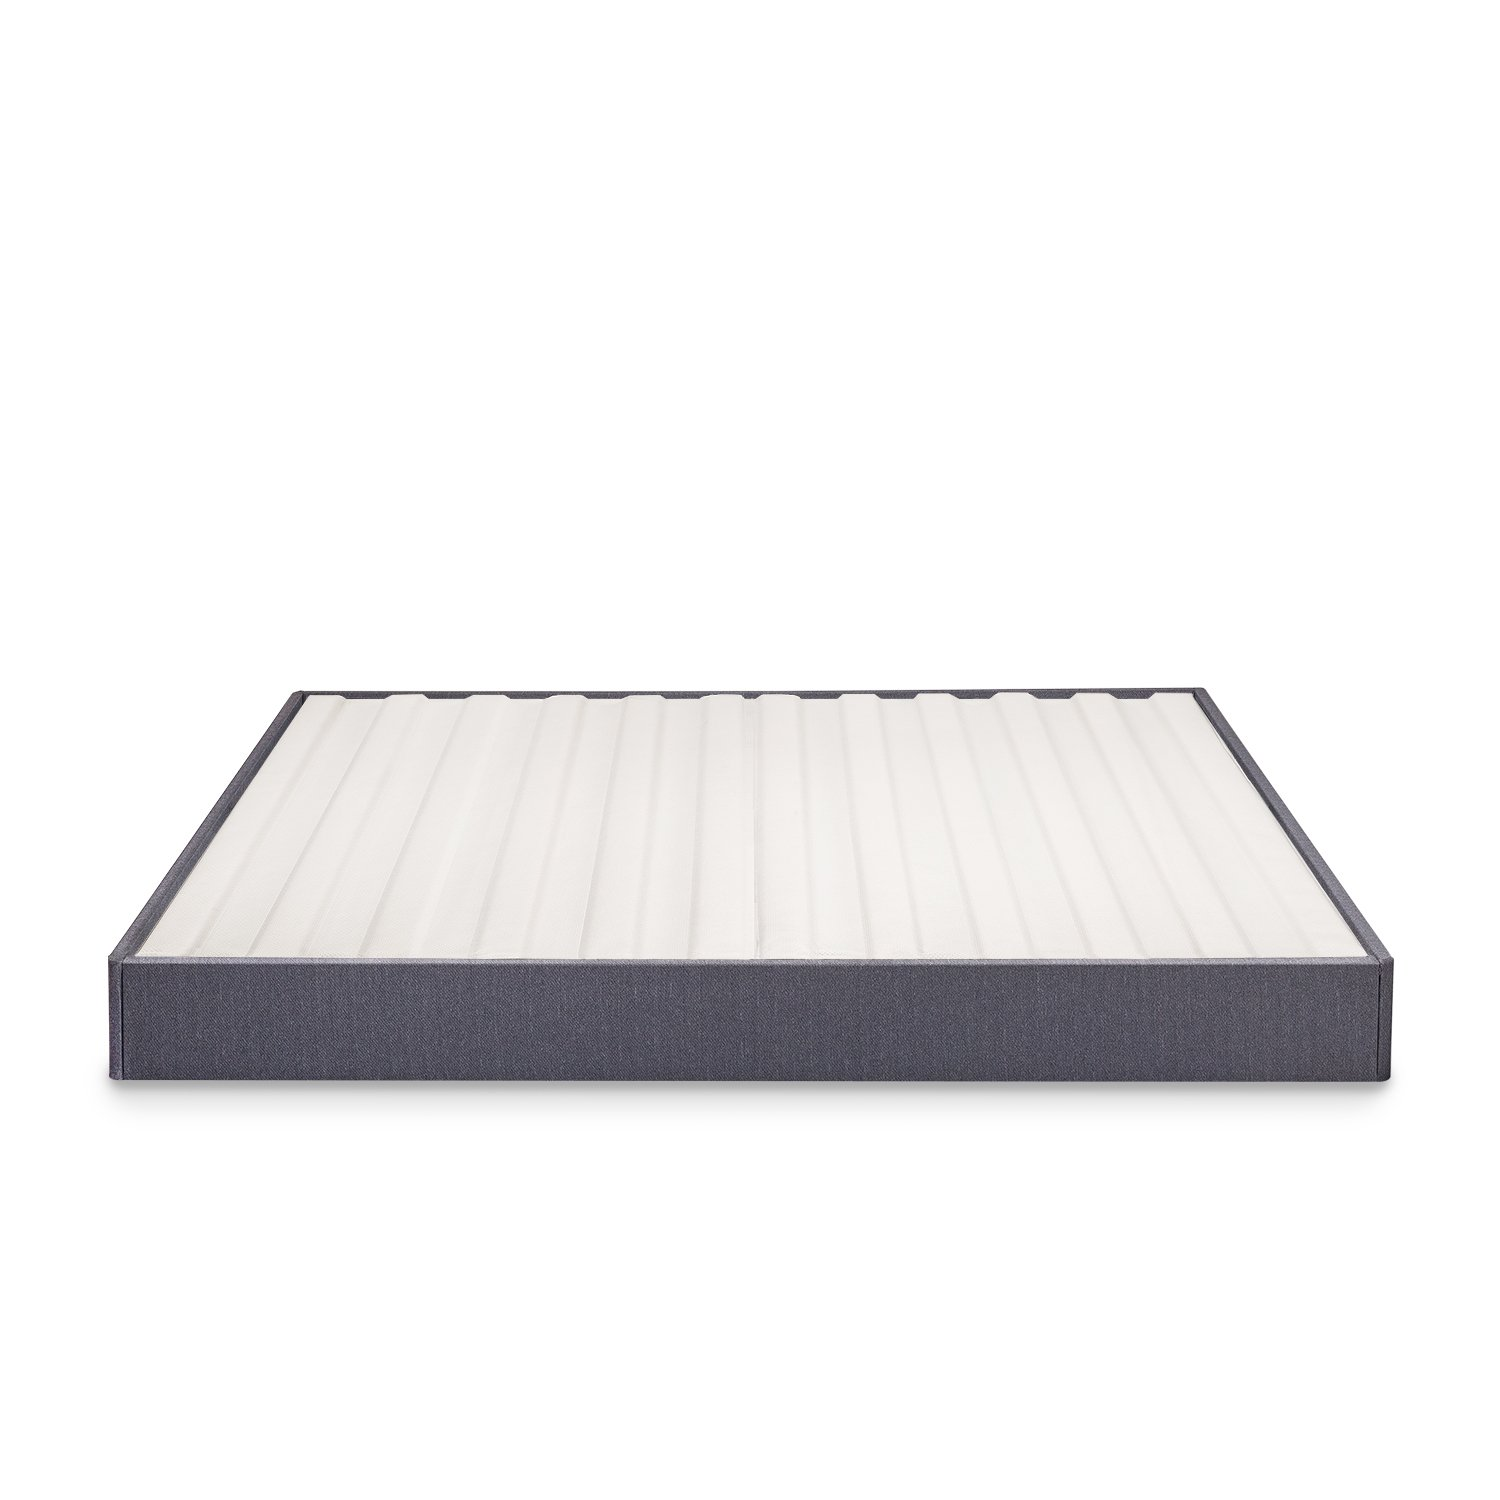 Zinus 7.5 Inch Essential Box Spring/Mattress Foundation/Easy Assembly Required, Queen